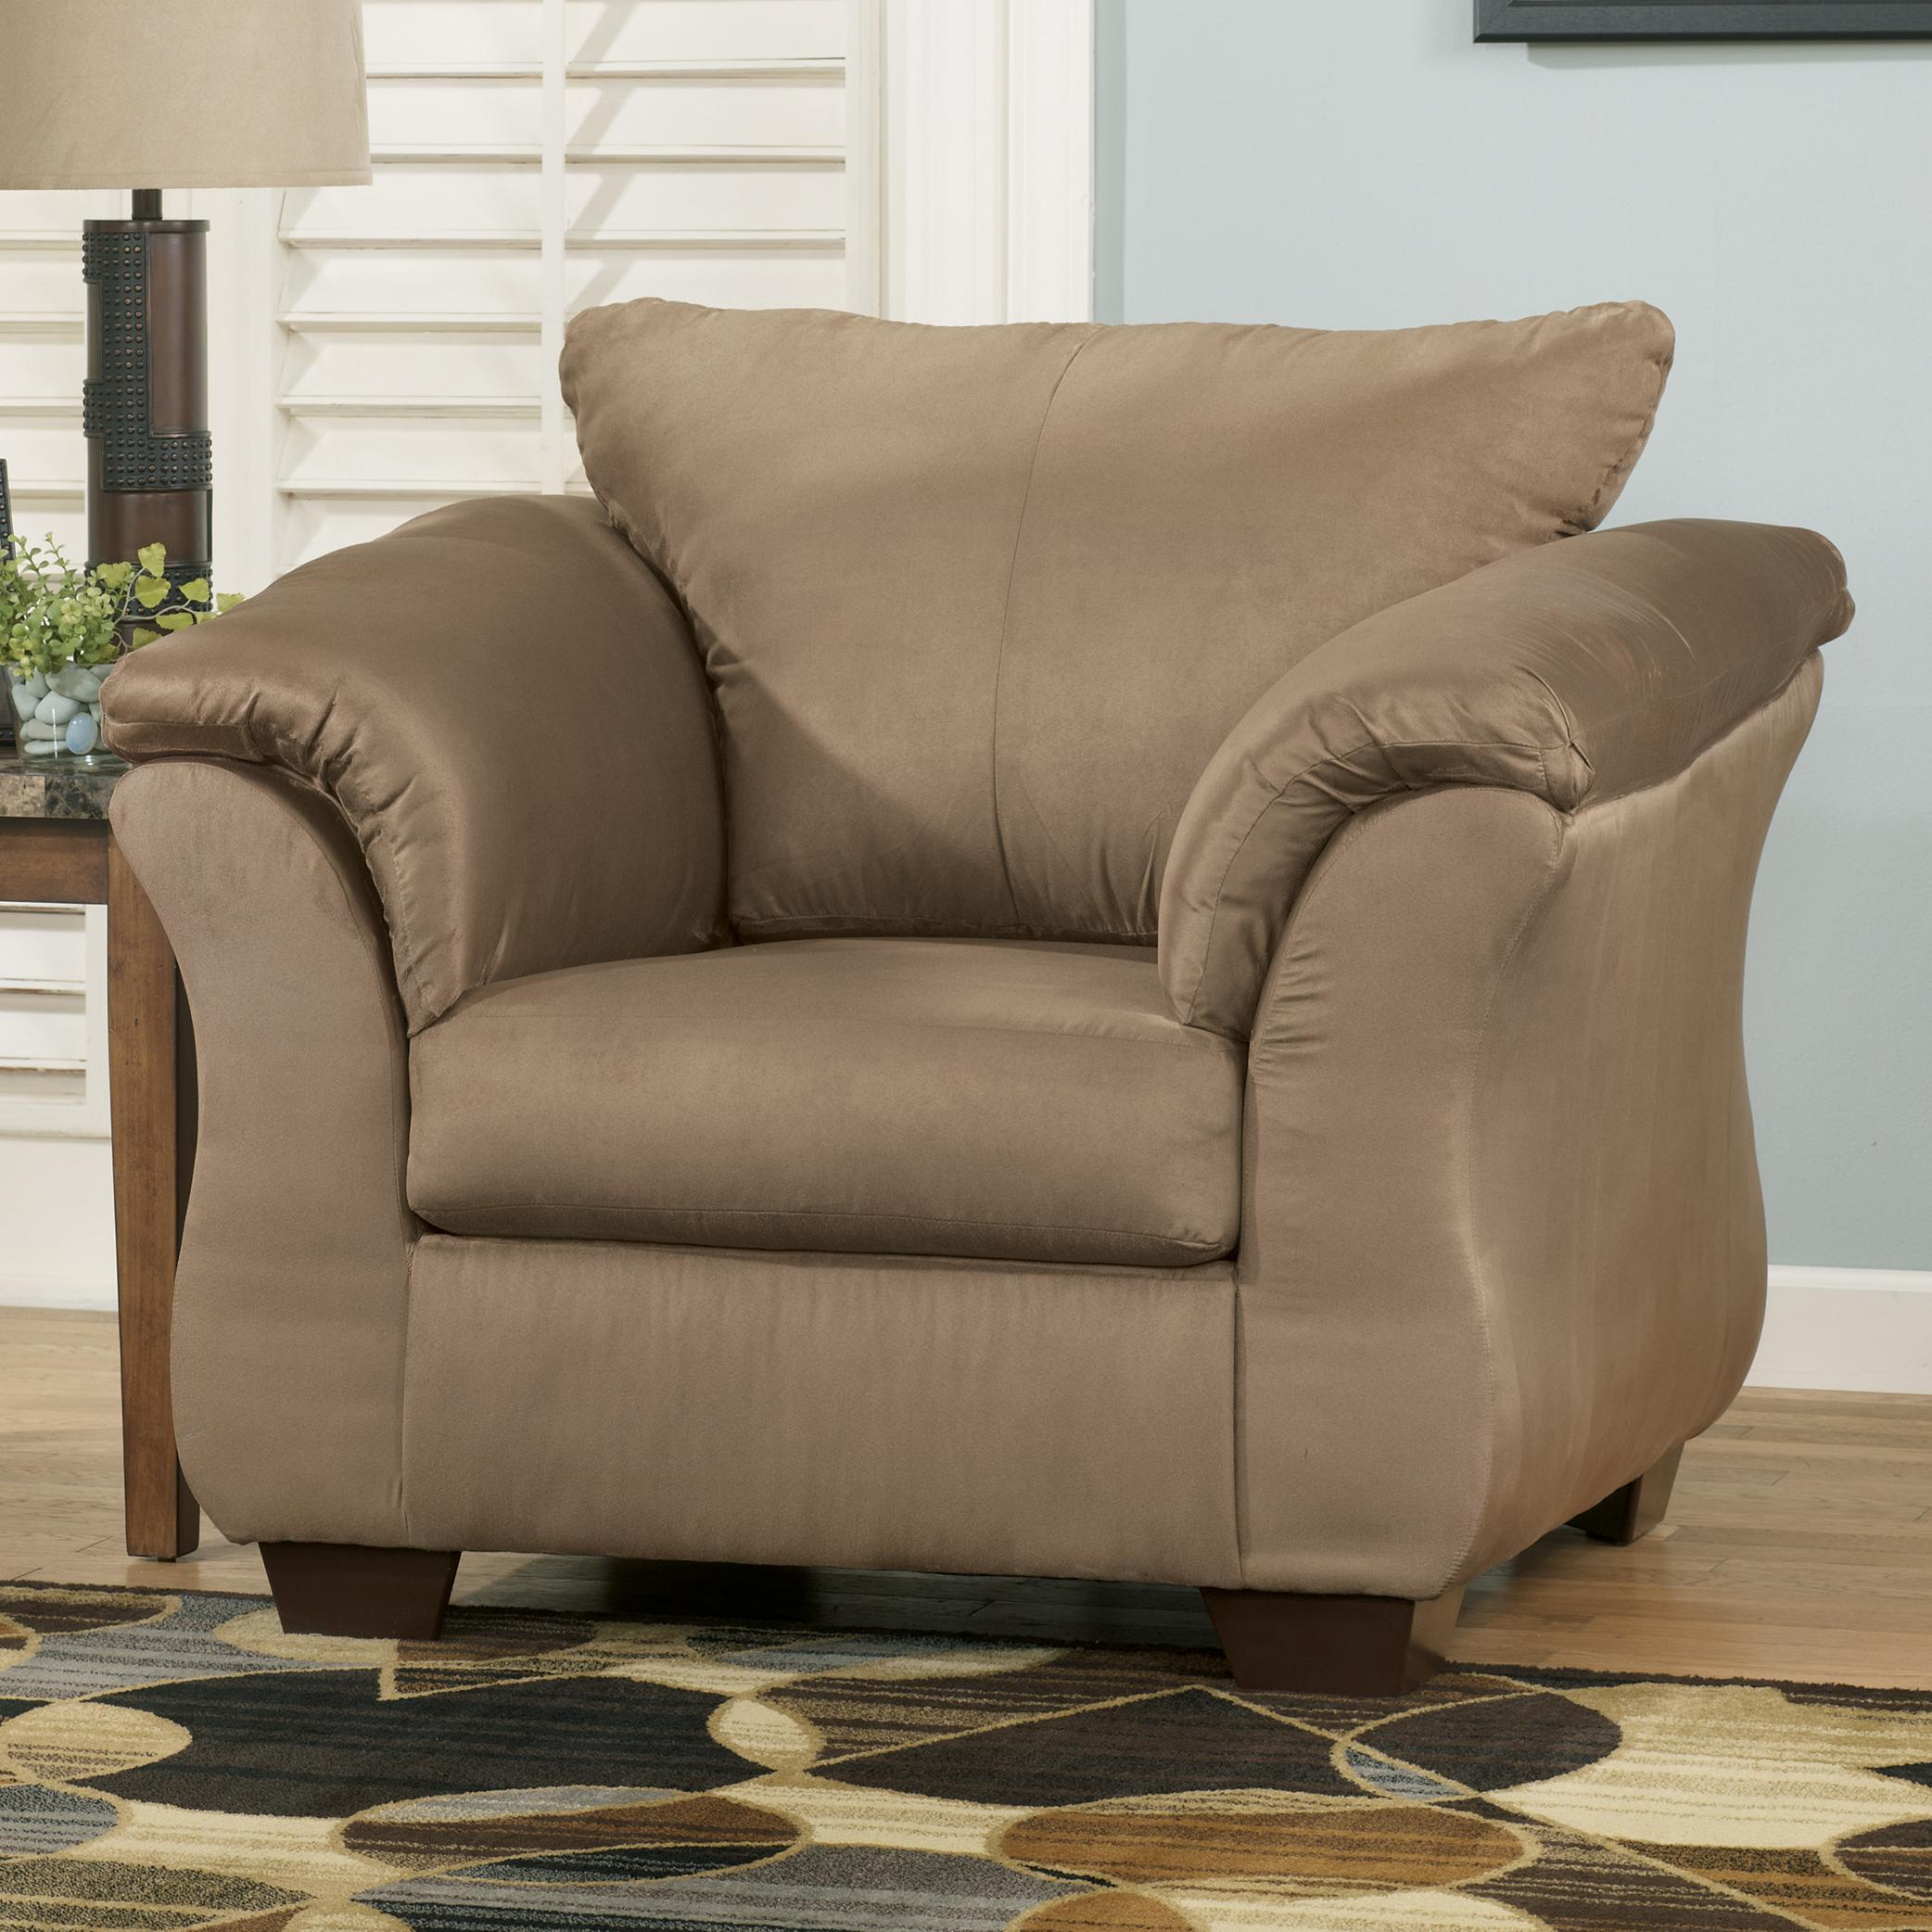 Signature Design by Ashley Darcy - Mocha Upholstered Chair - Item Number: 7500220